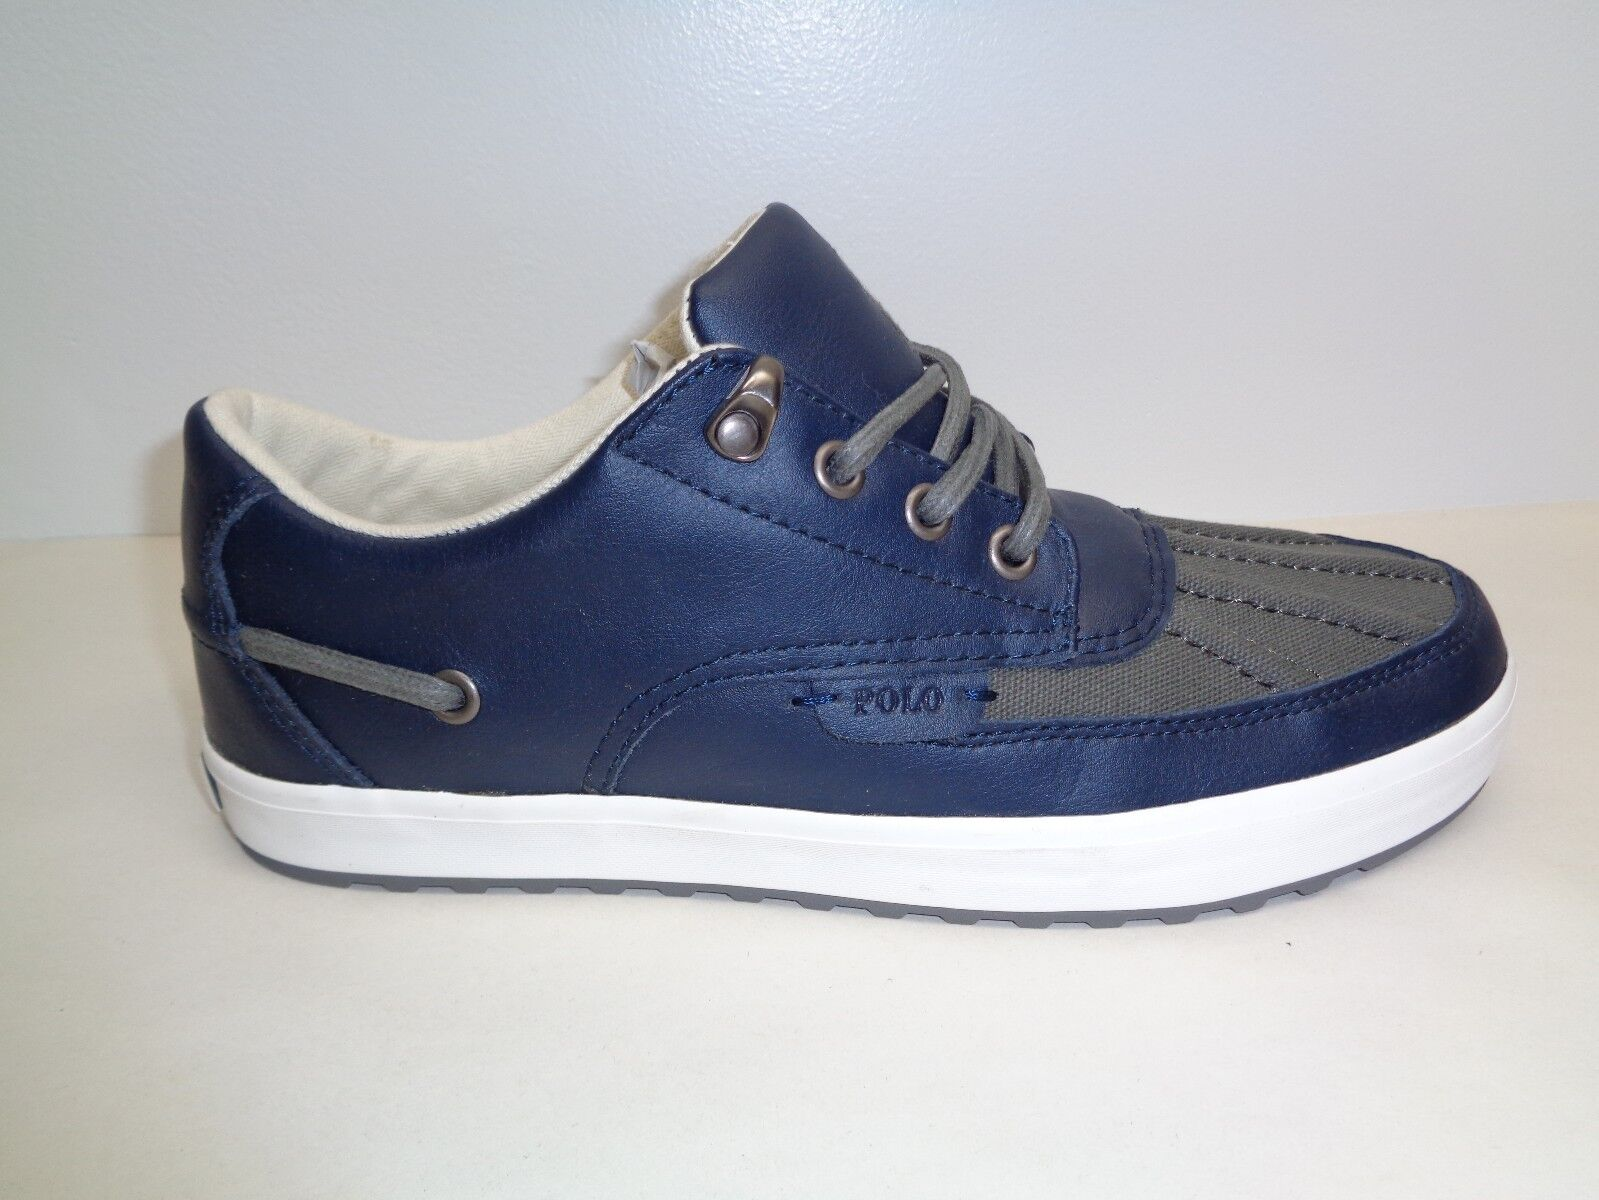 Polo Ralph Lauren Size 8.5 M RAMIRO Navy Leather Fashion Sneakers New Mens shoes